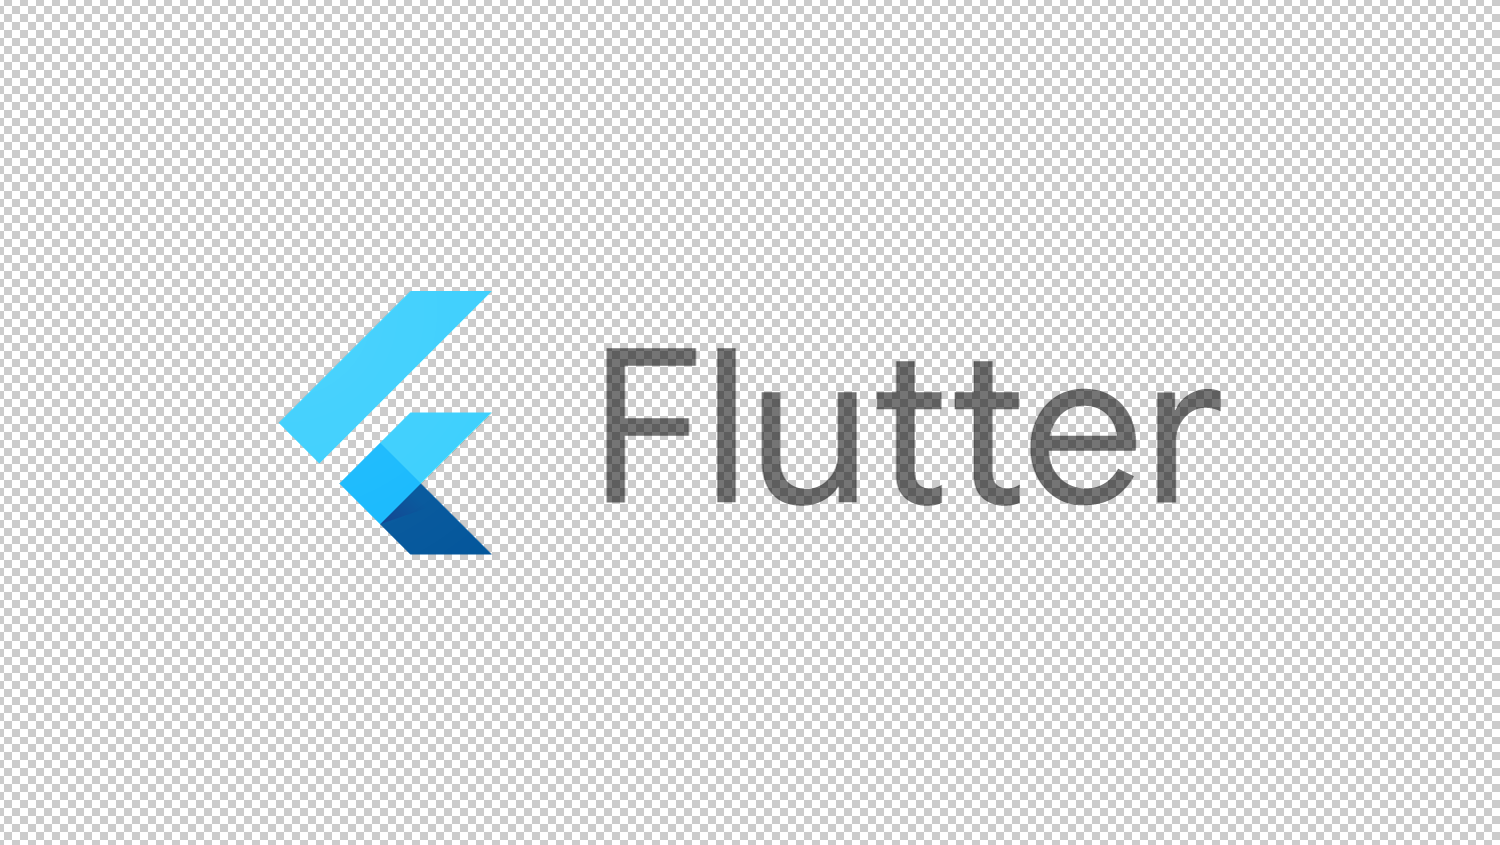 Flutter software logo